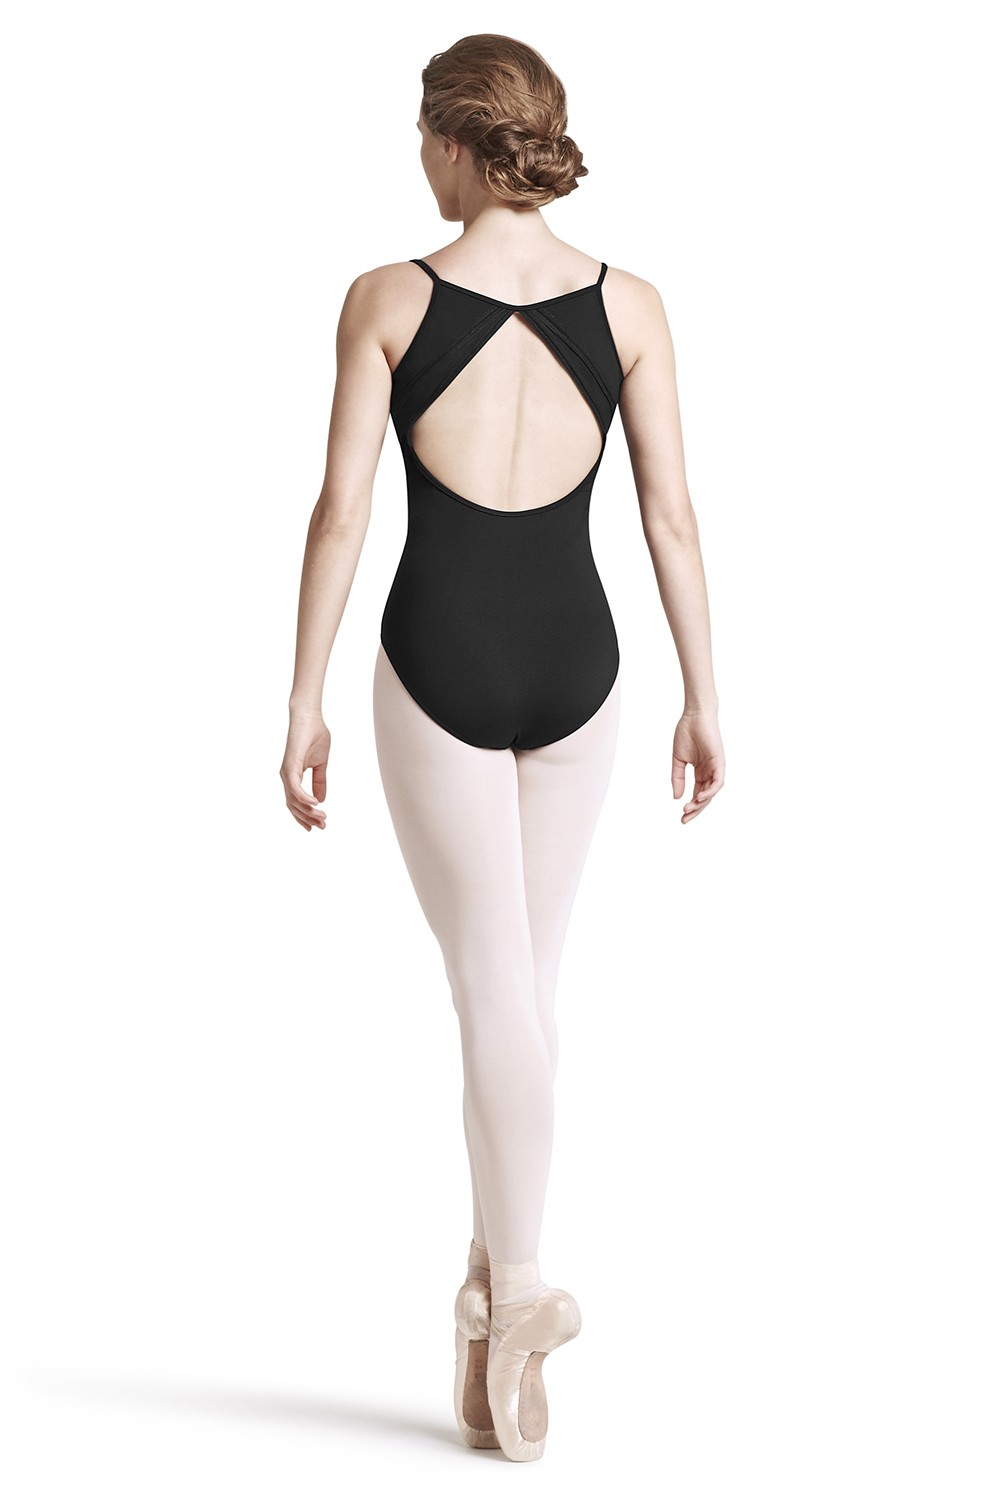 Ambara Women's Dance Leotards